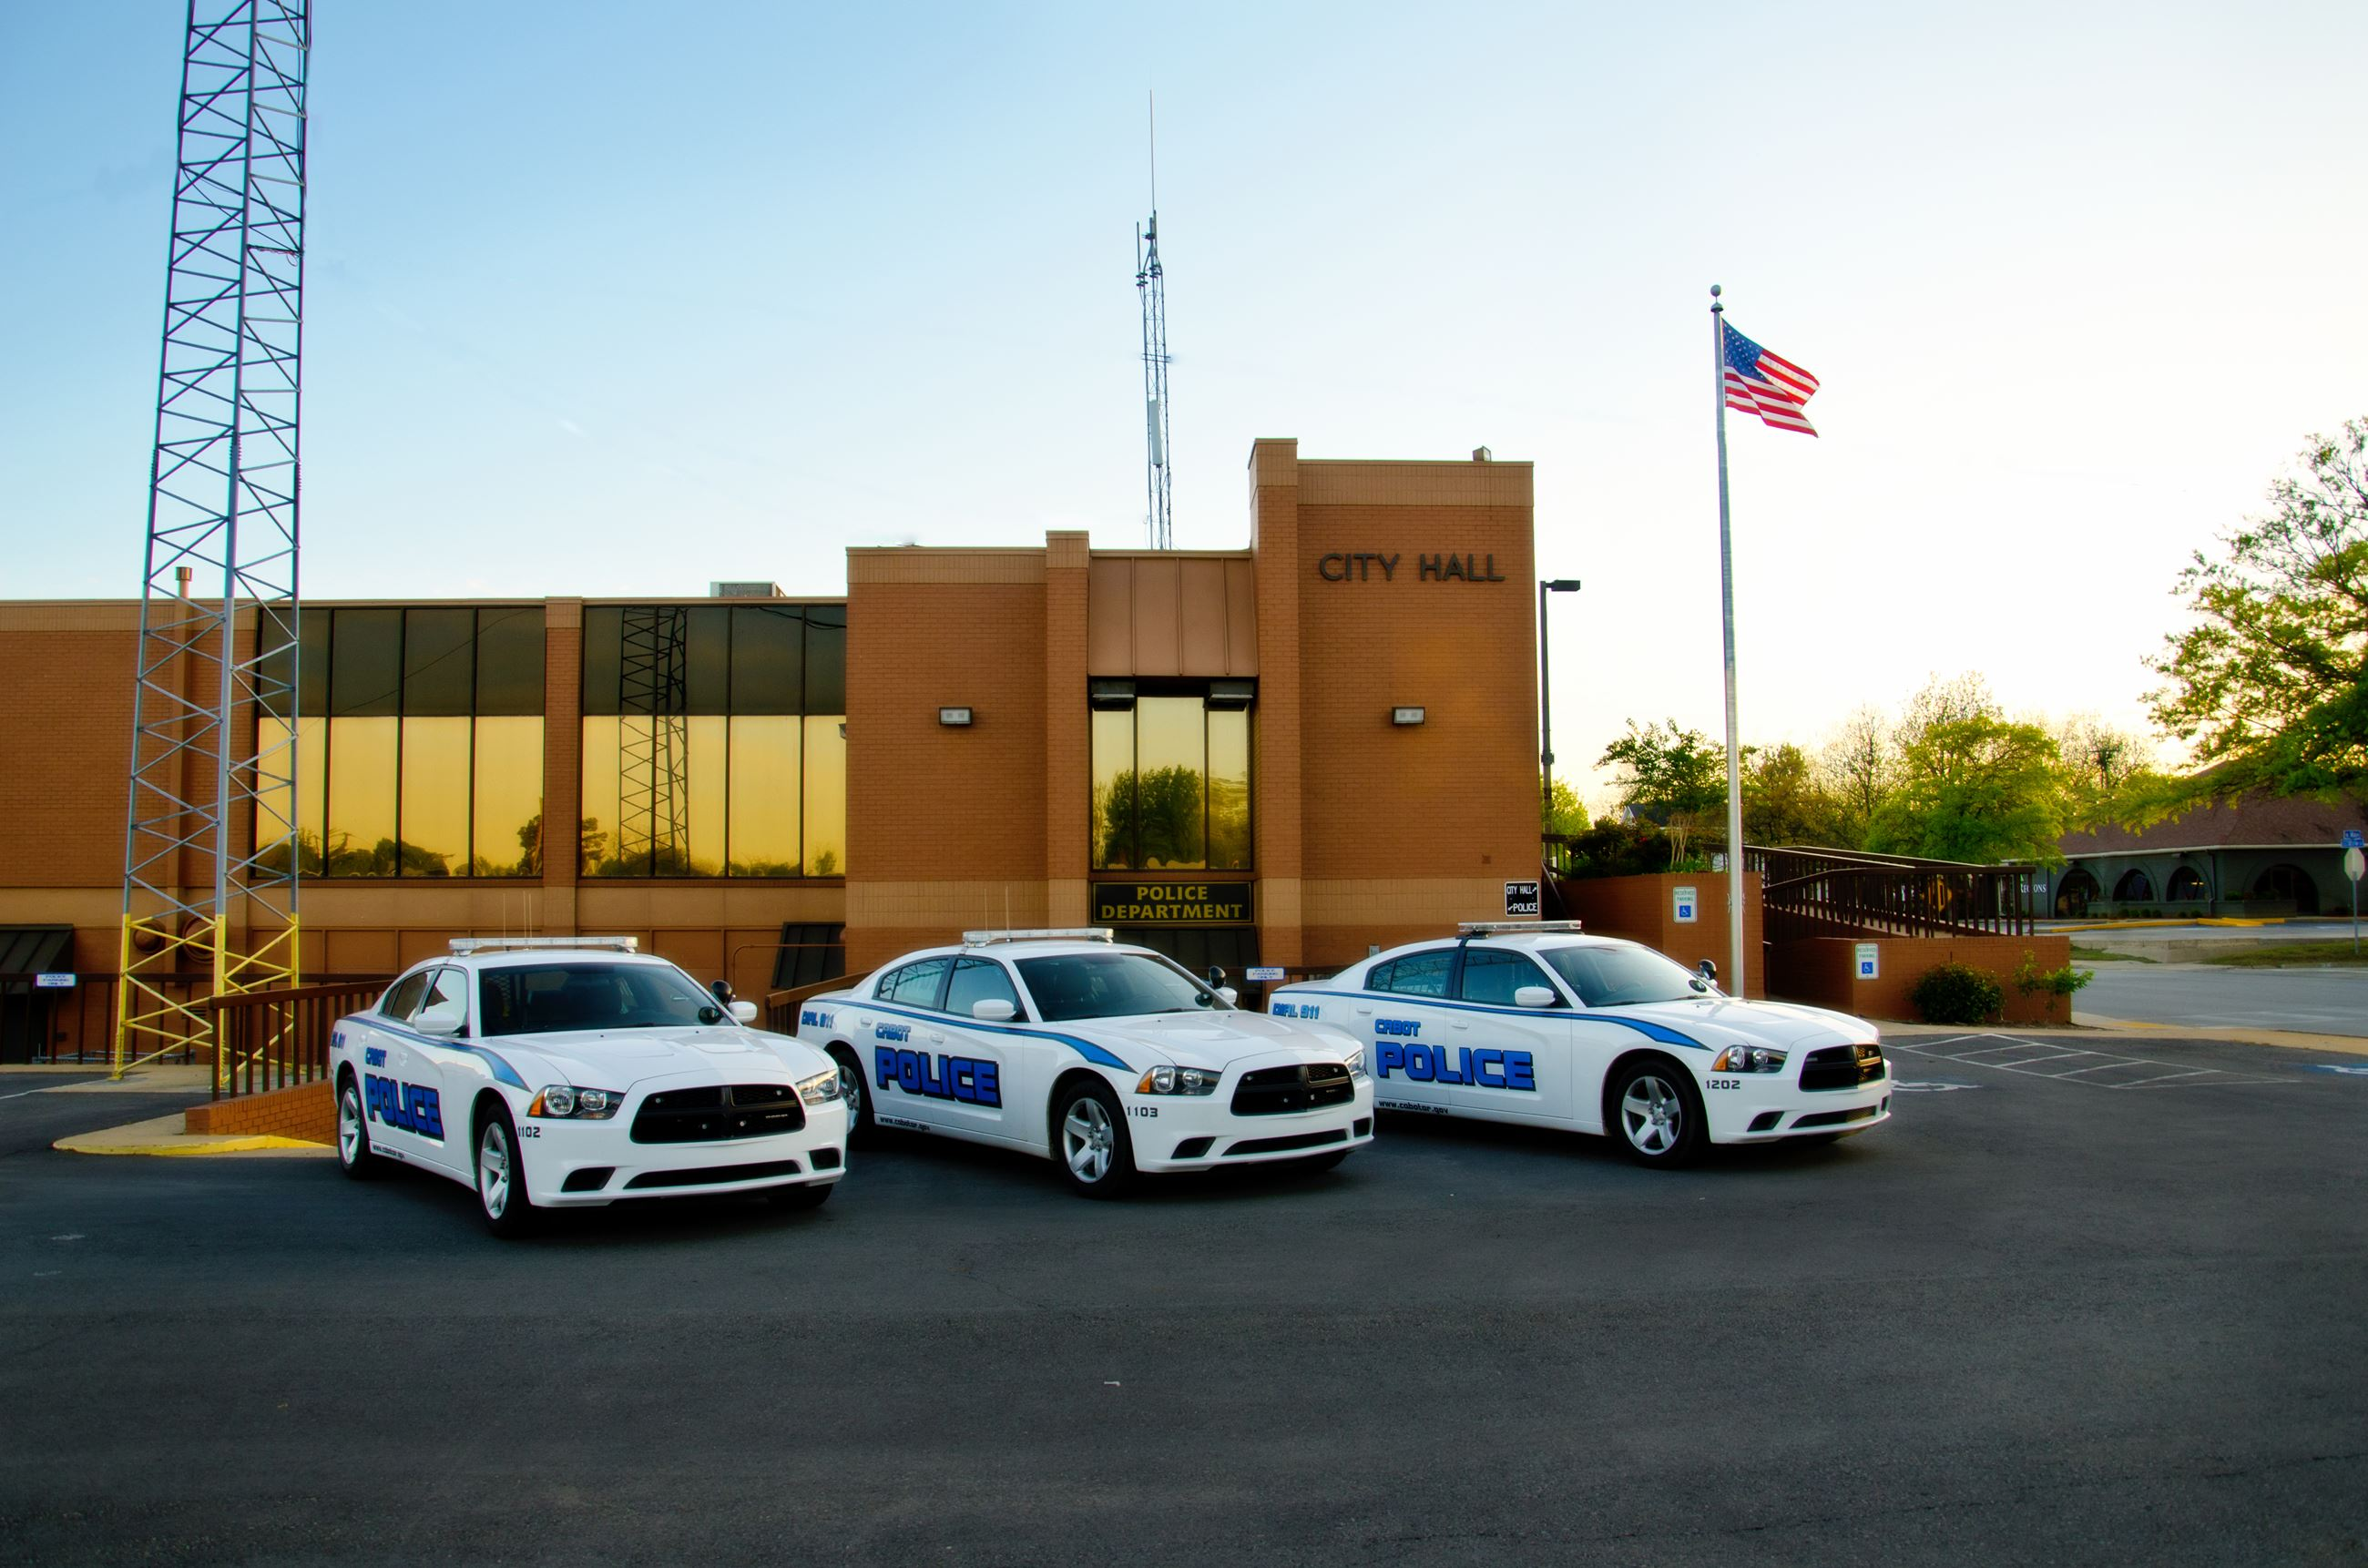 Cabot Police Department Cars